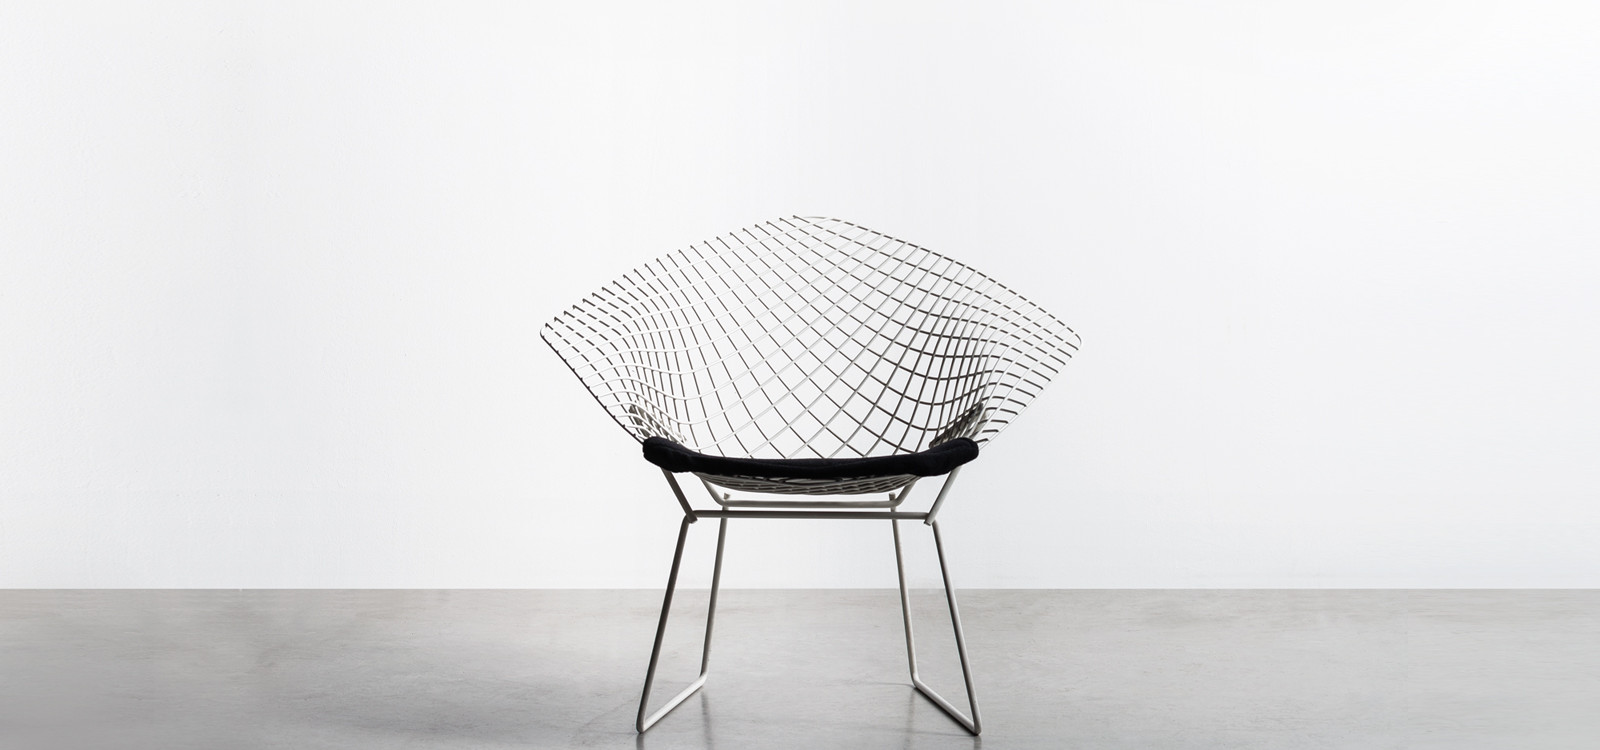 Mod. 421 by Harry Bertoia, 1952